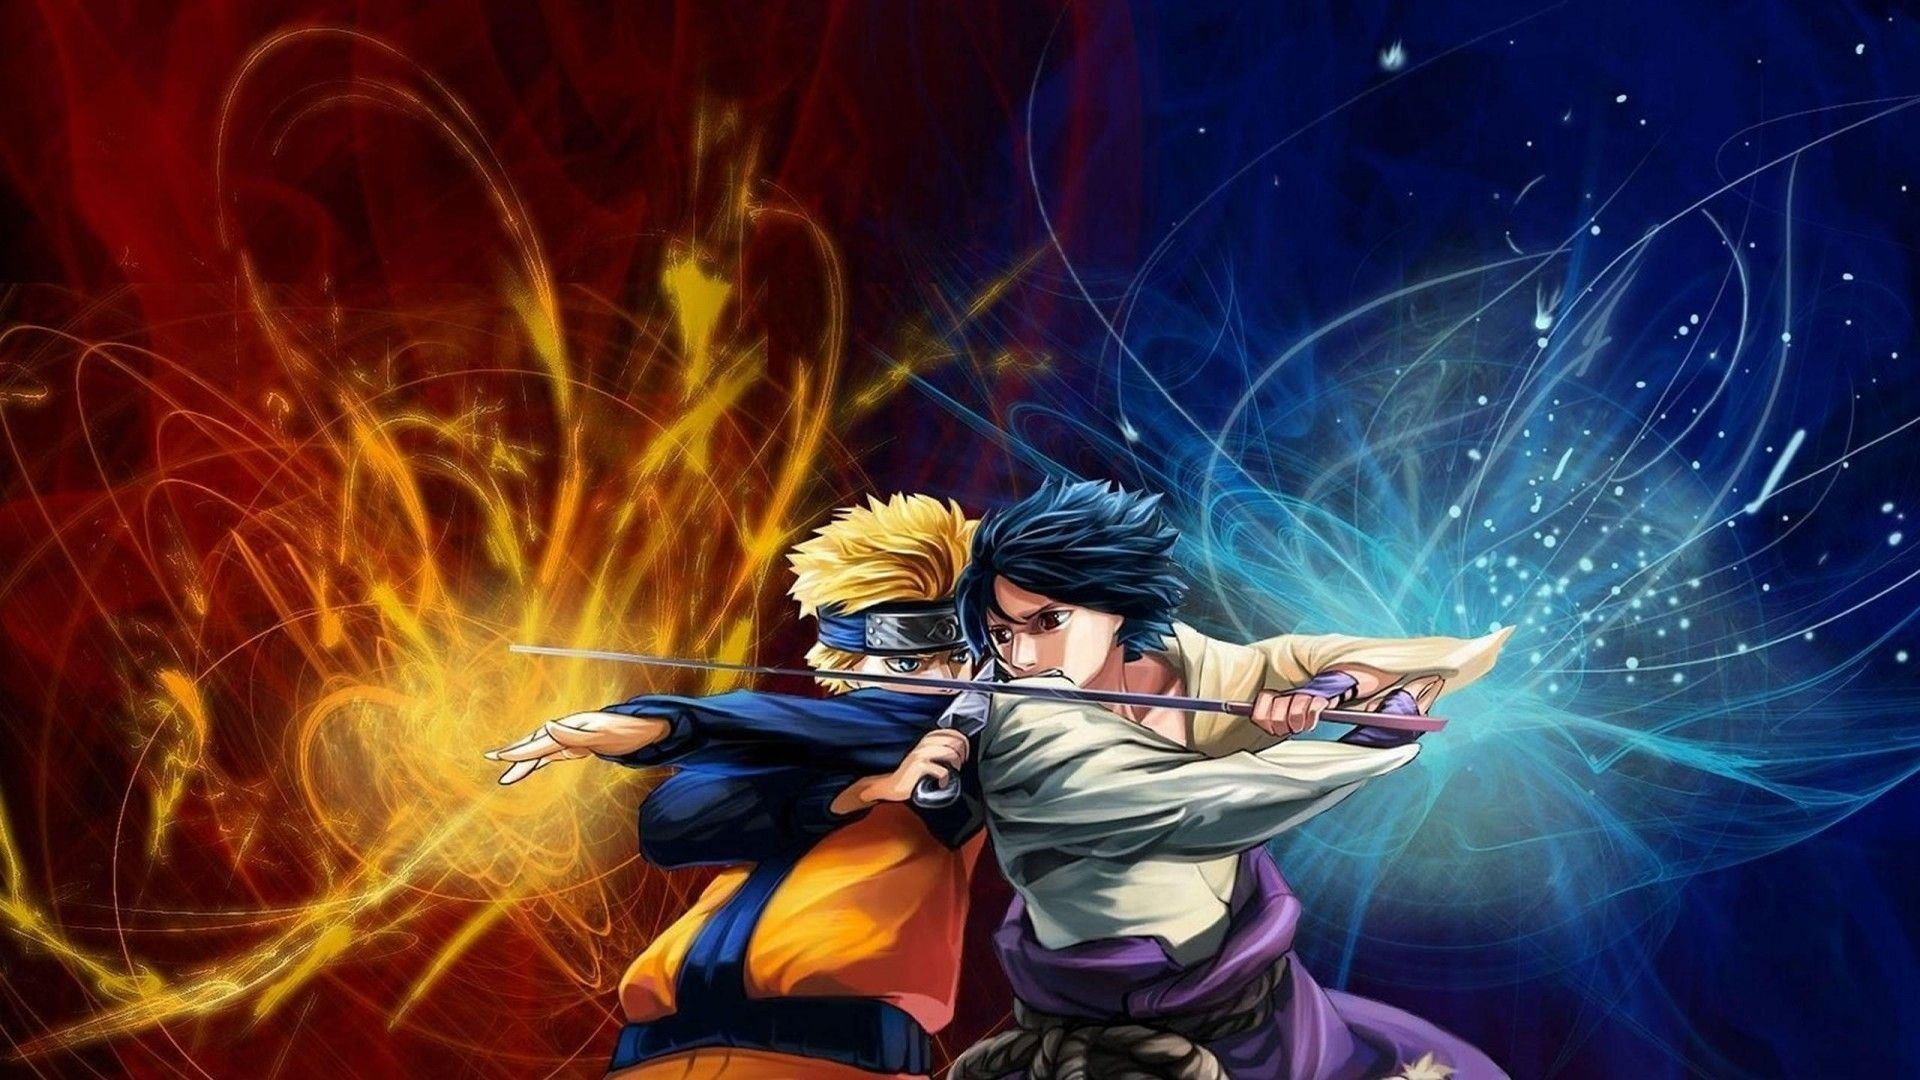 Moving Naruto Wallpapers Top Free Moving Naruto Backgrounds Wallpaperaccess